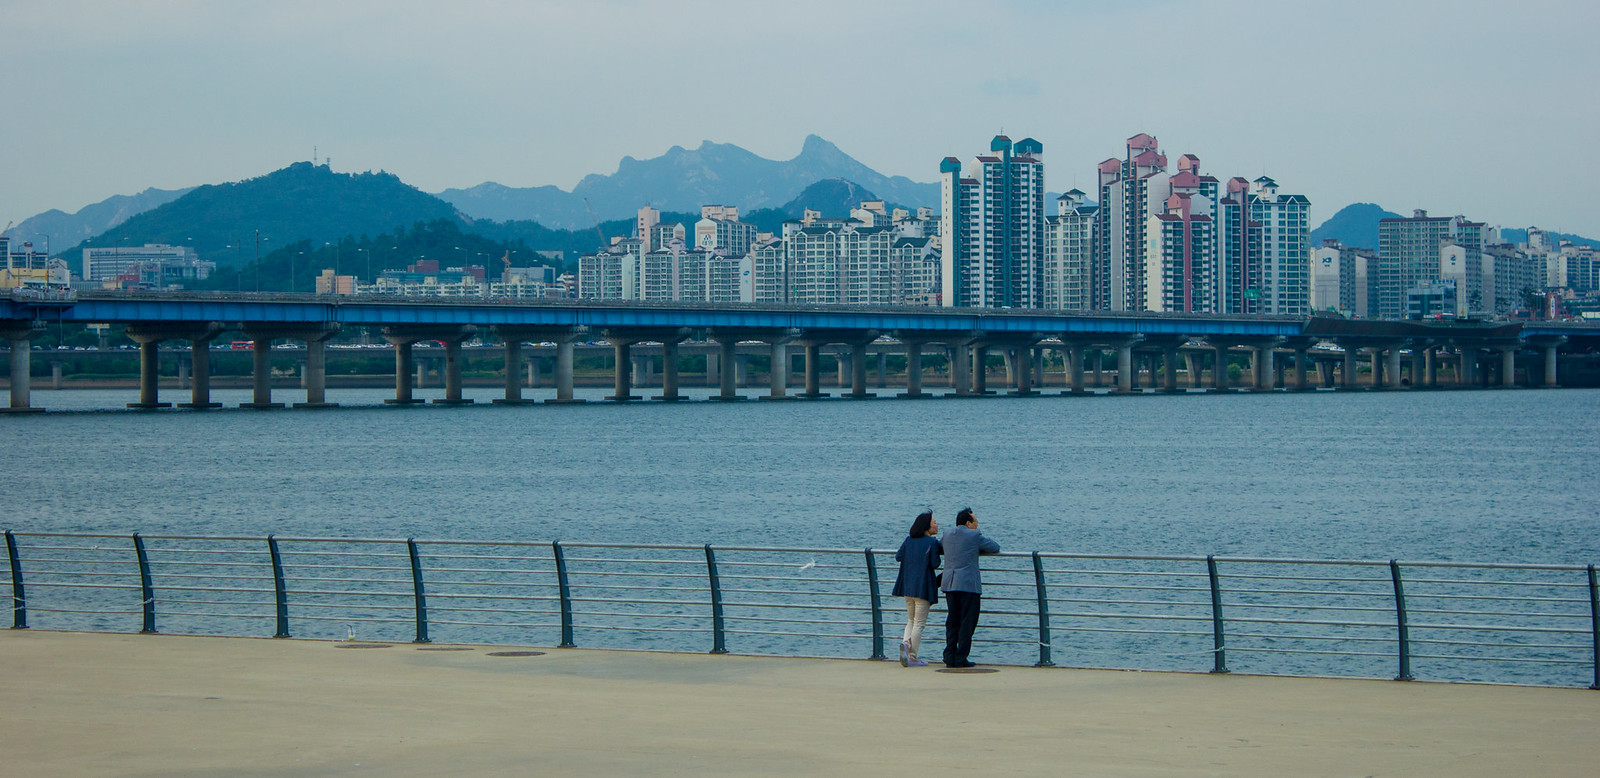 Across the Han River